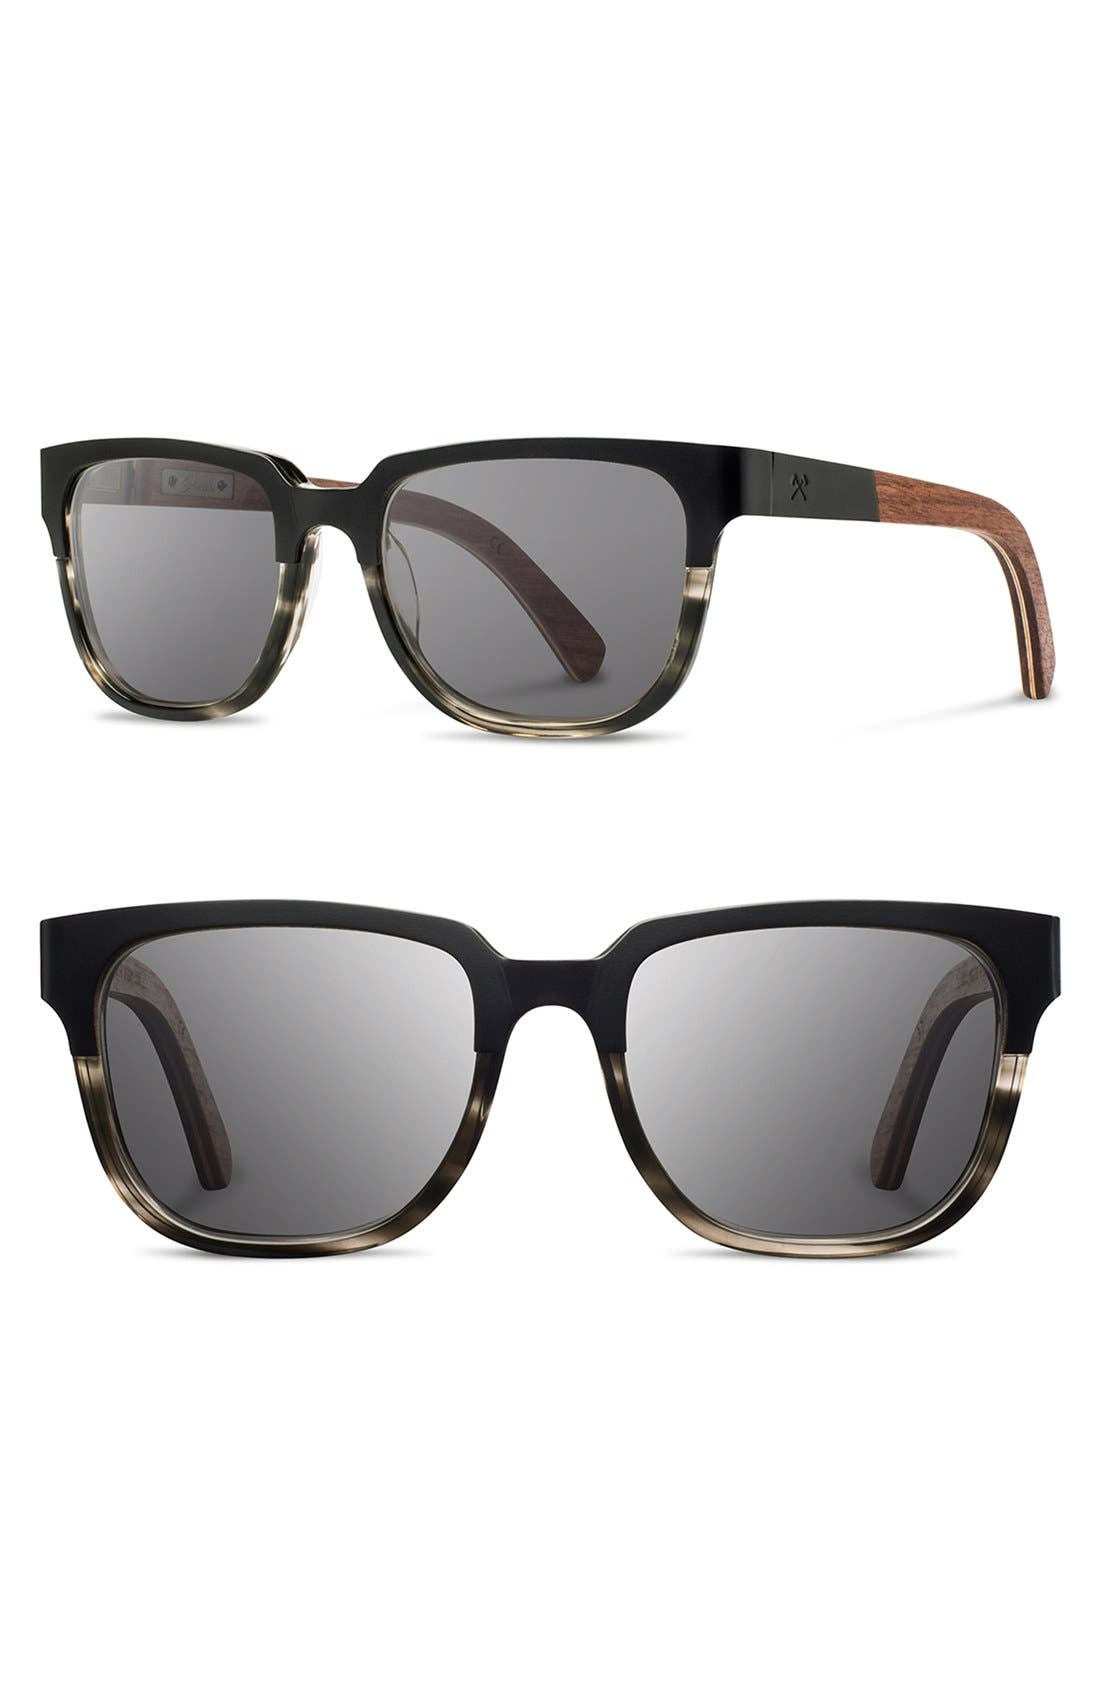 Shwood 'Prescott' 52mm Titanium & Wood Sunglasses